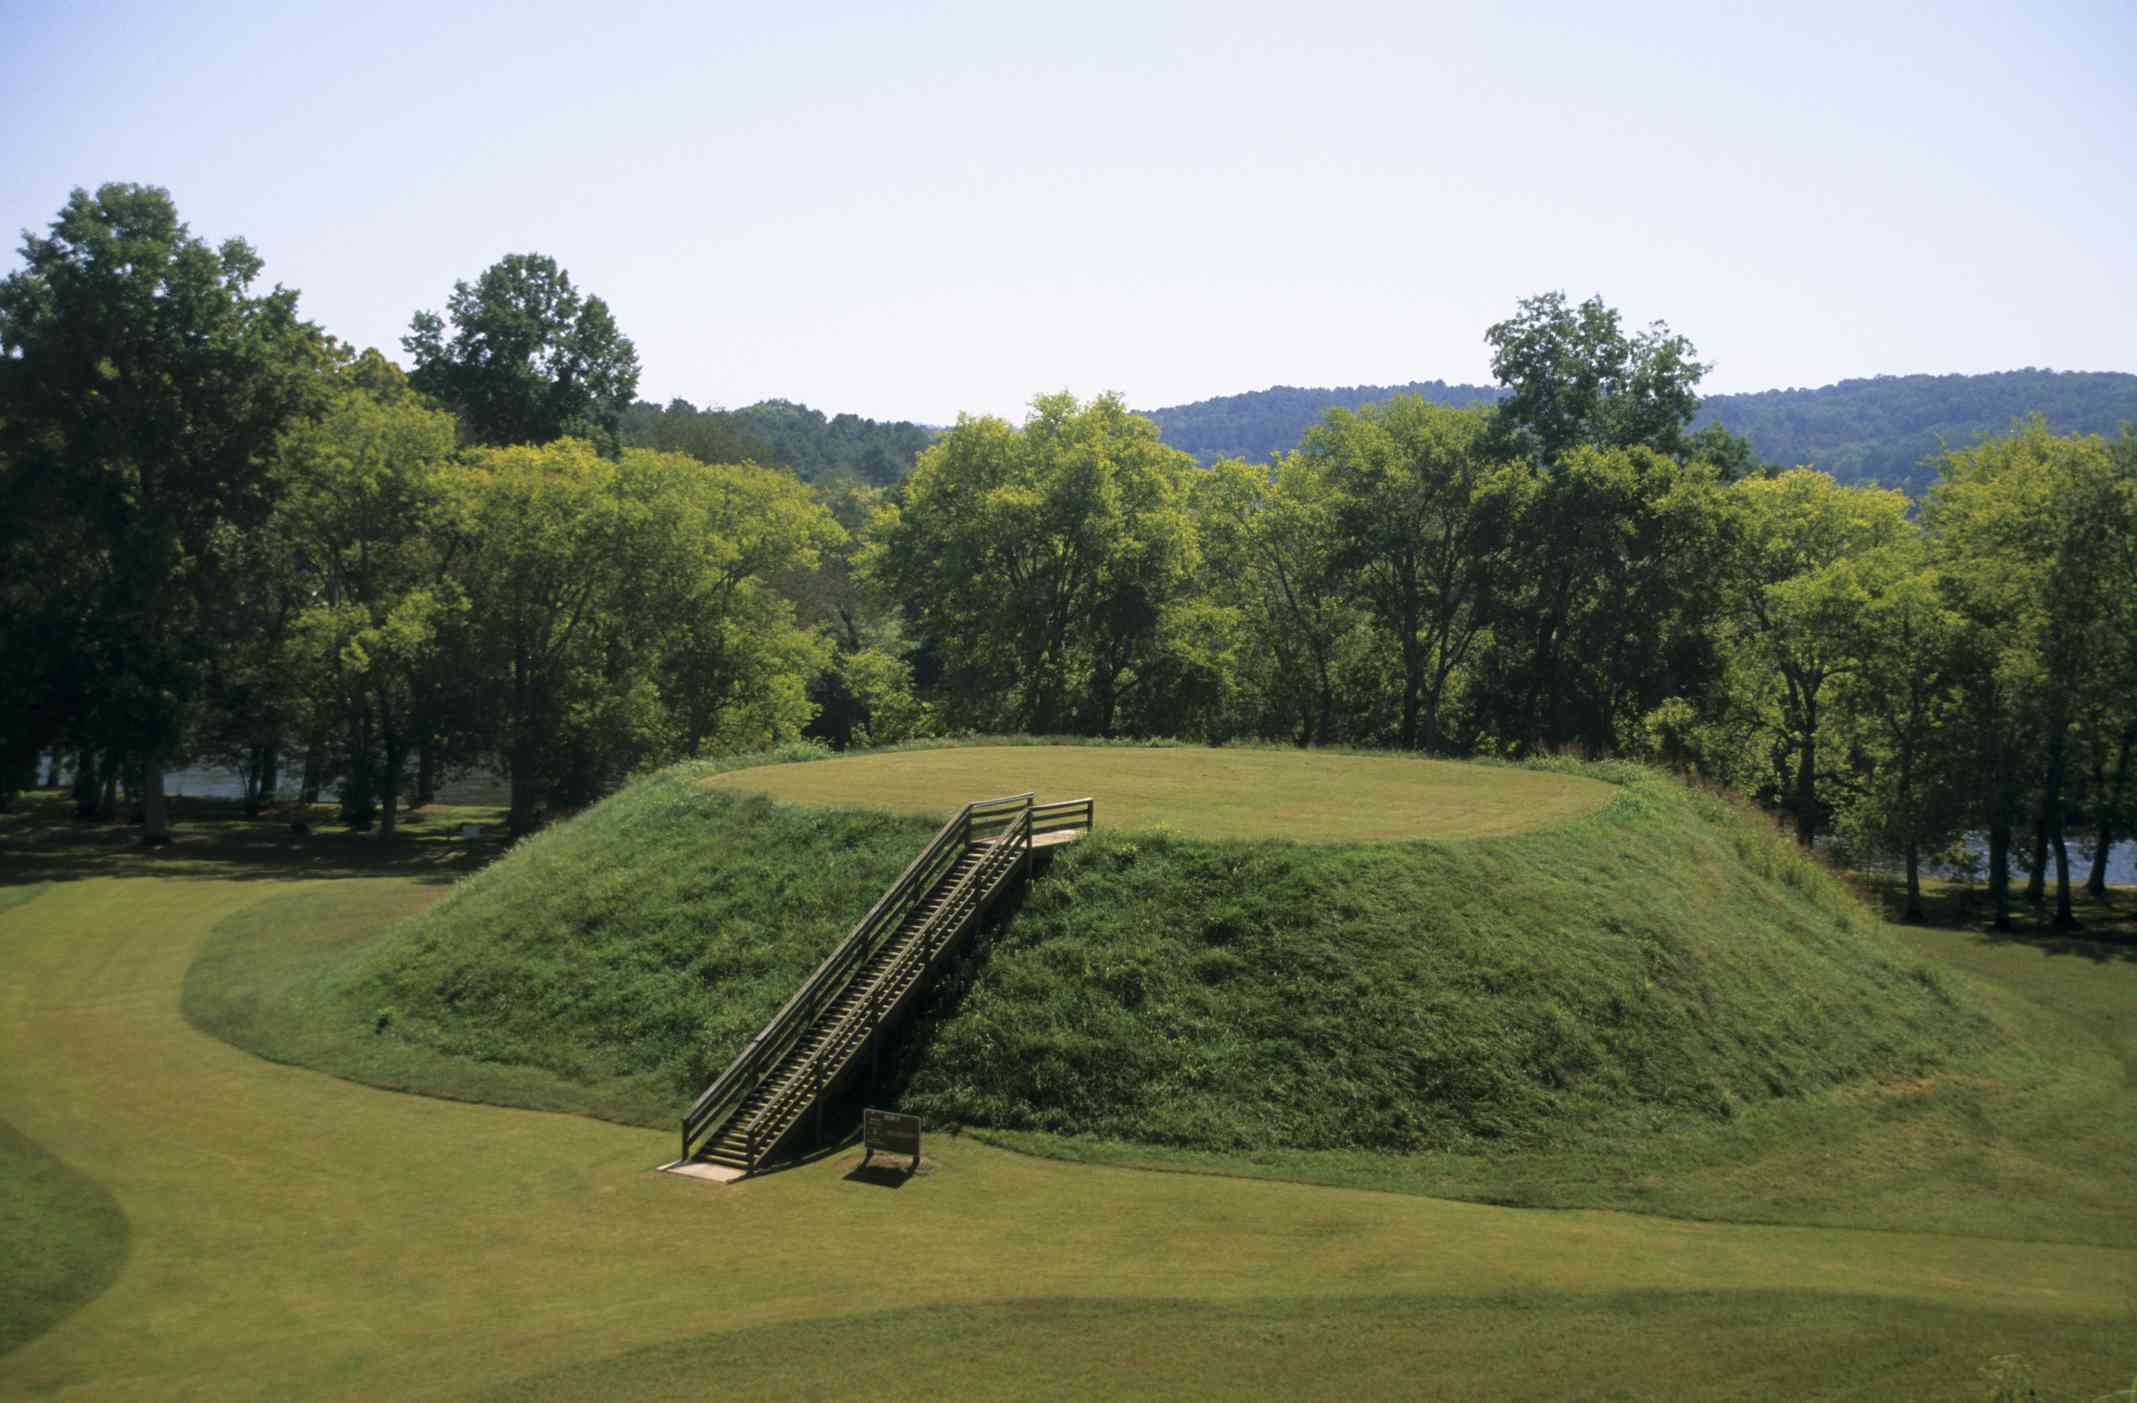 Mound B at the Etowah Indian Mounds State Historic Site